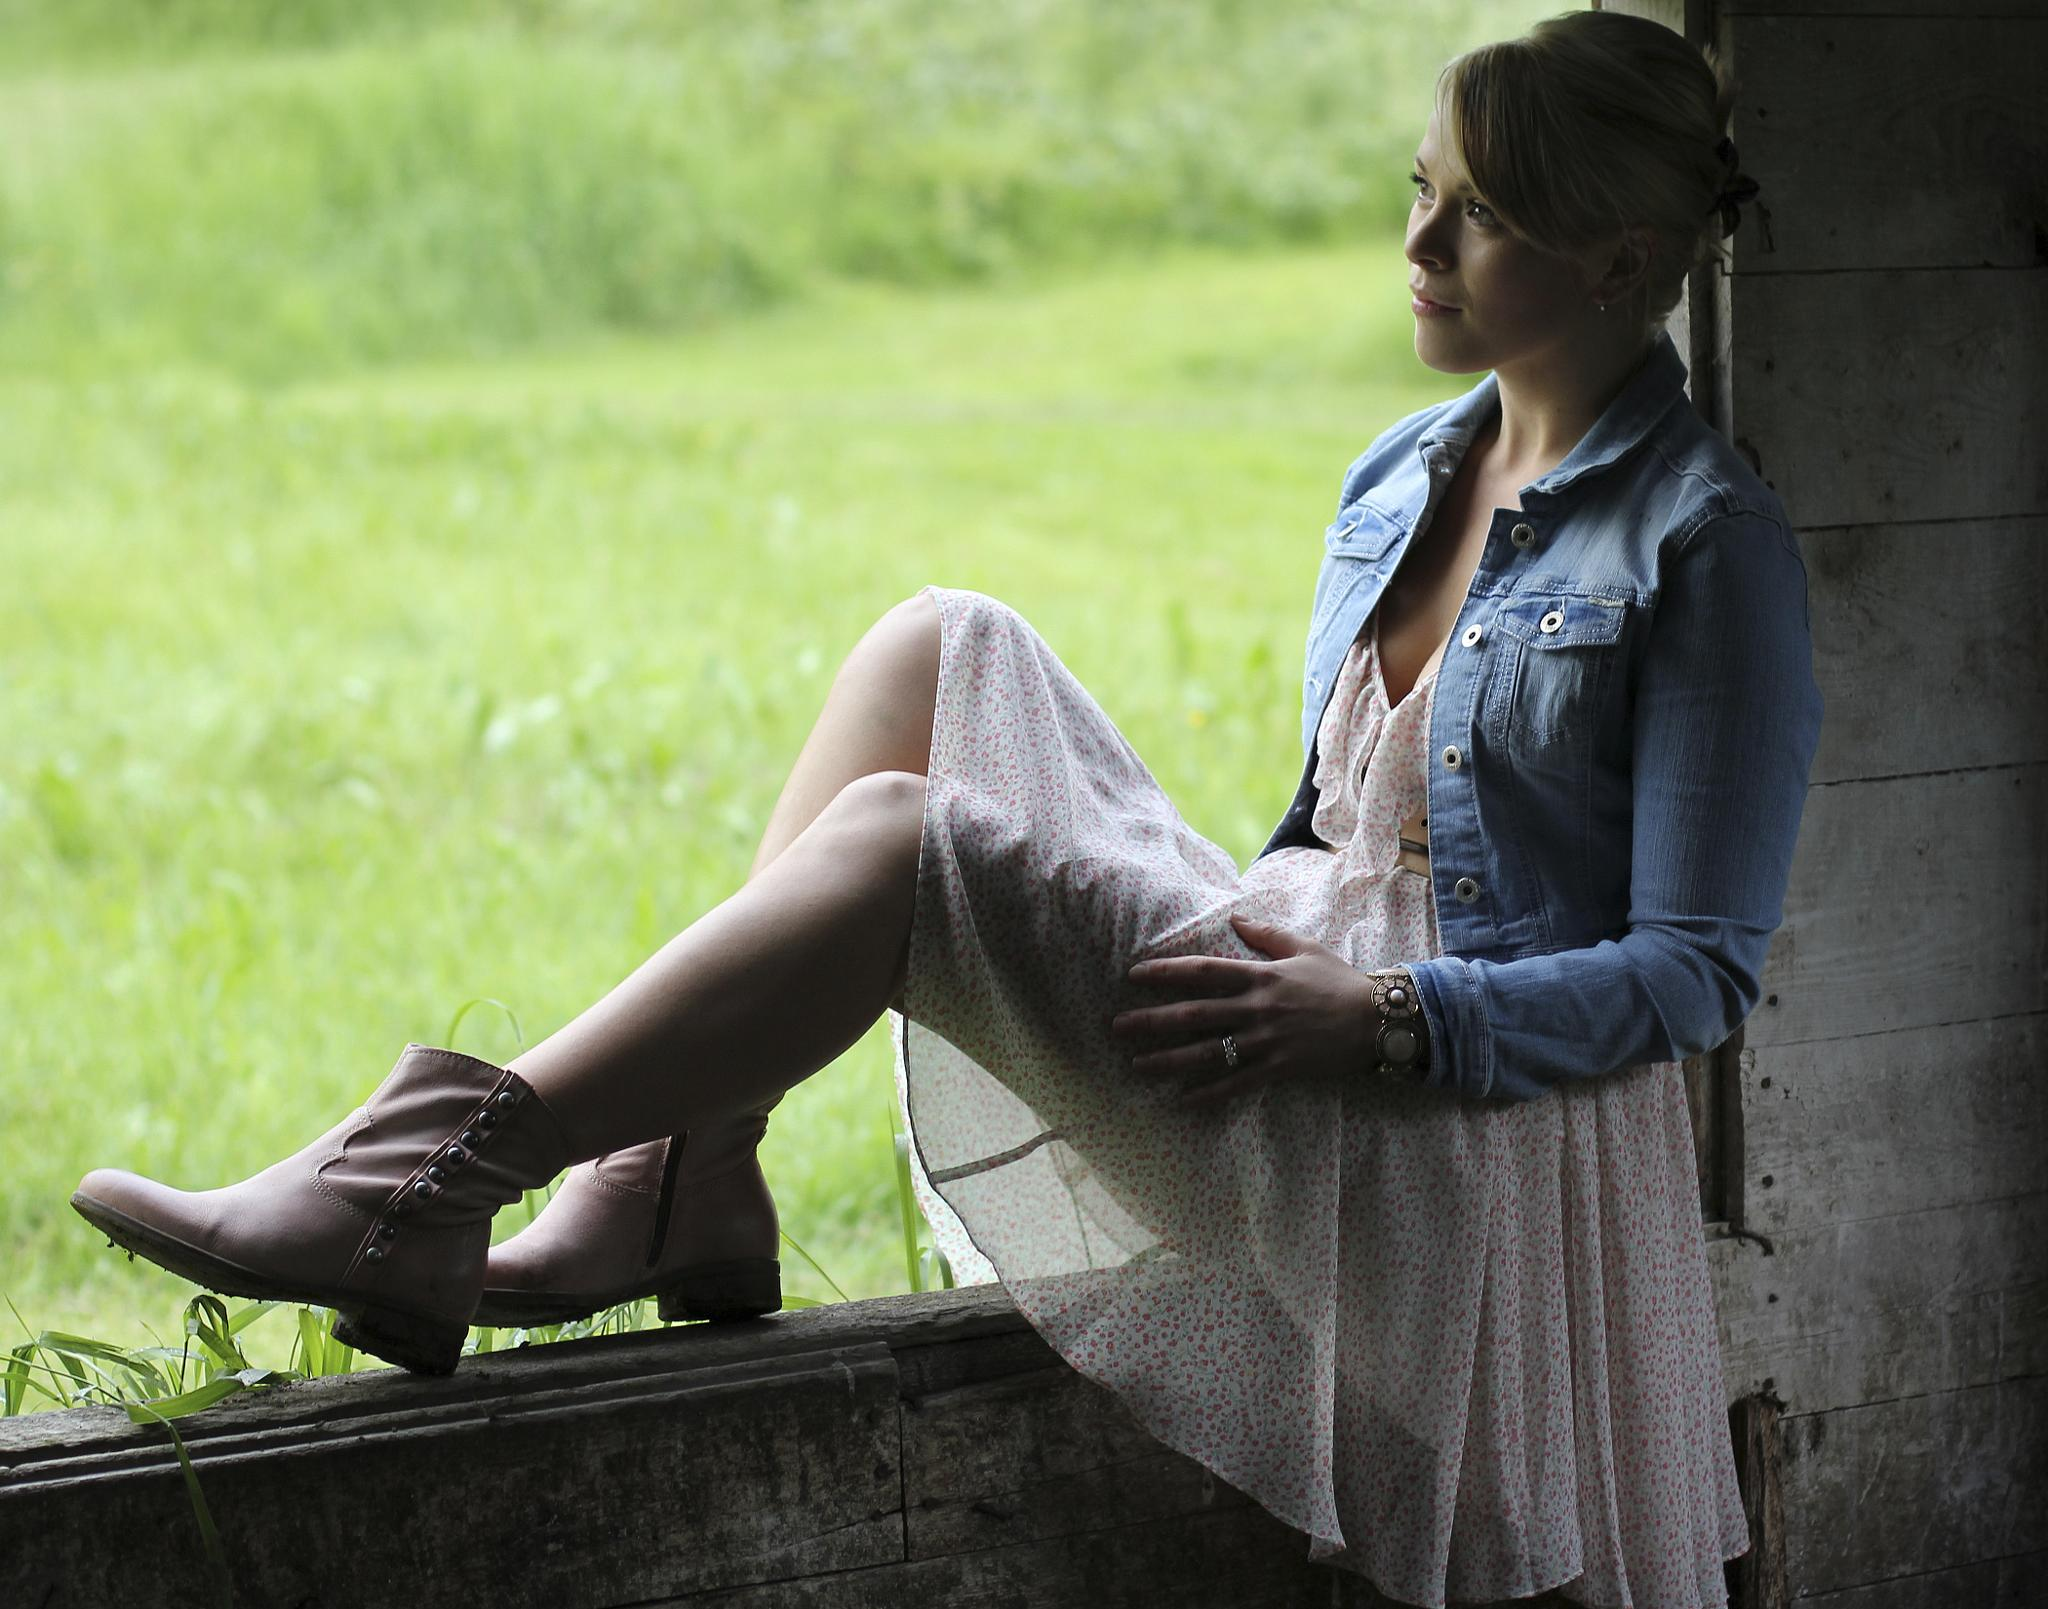 Country Girl by kelly.markowski.7